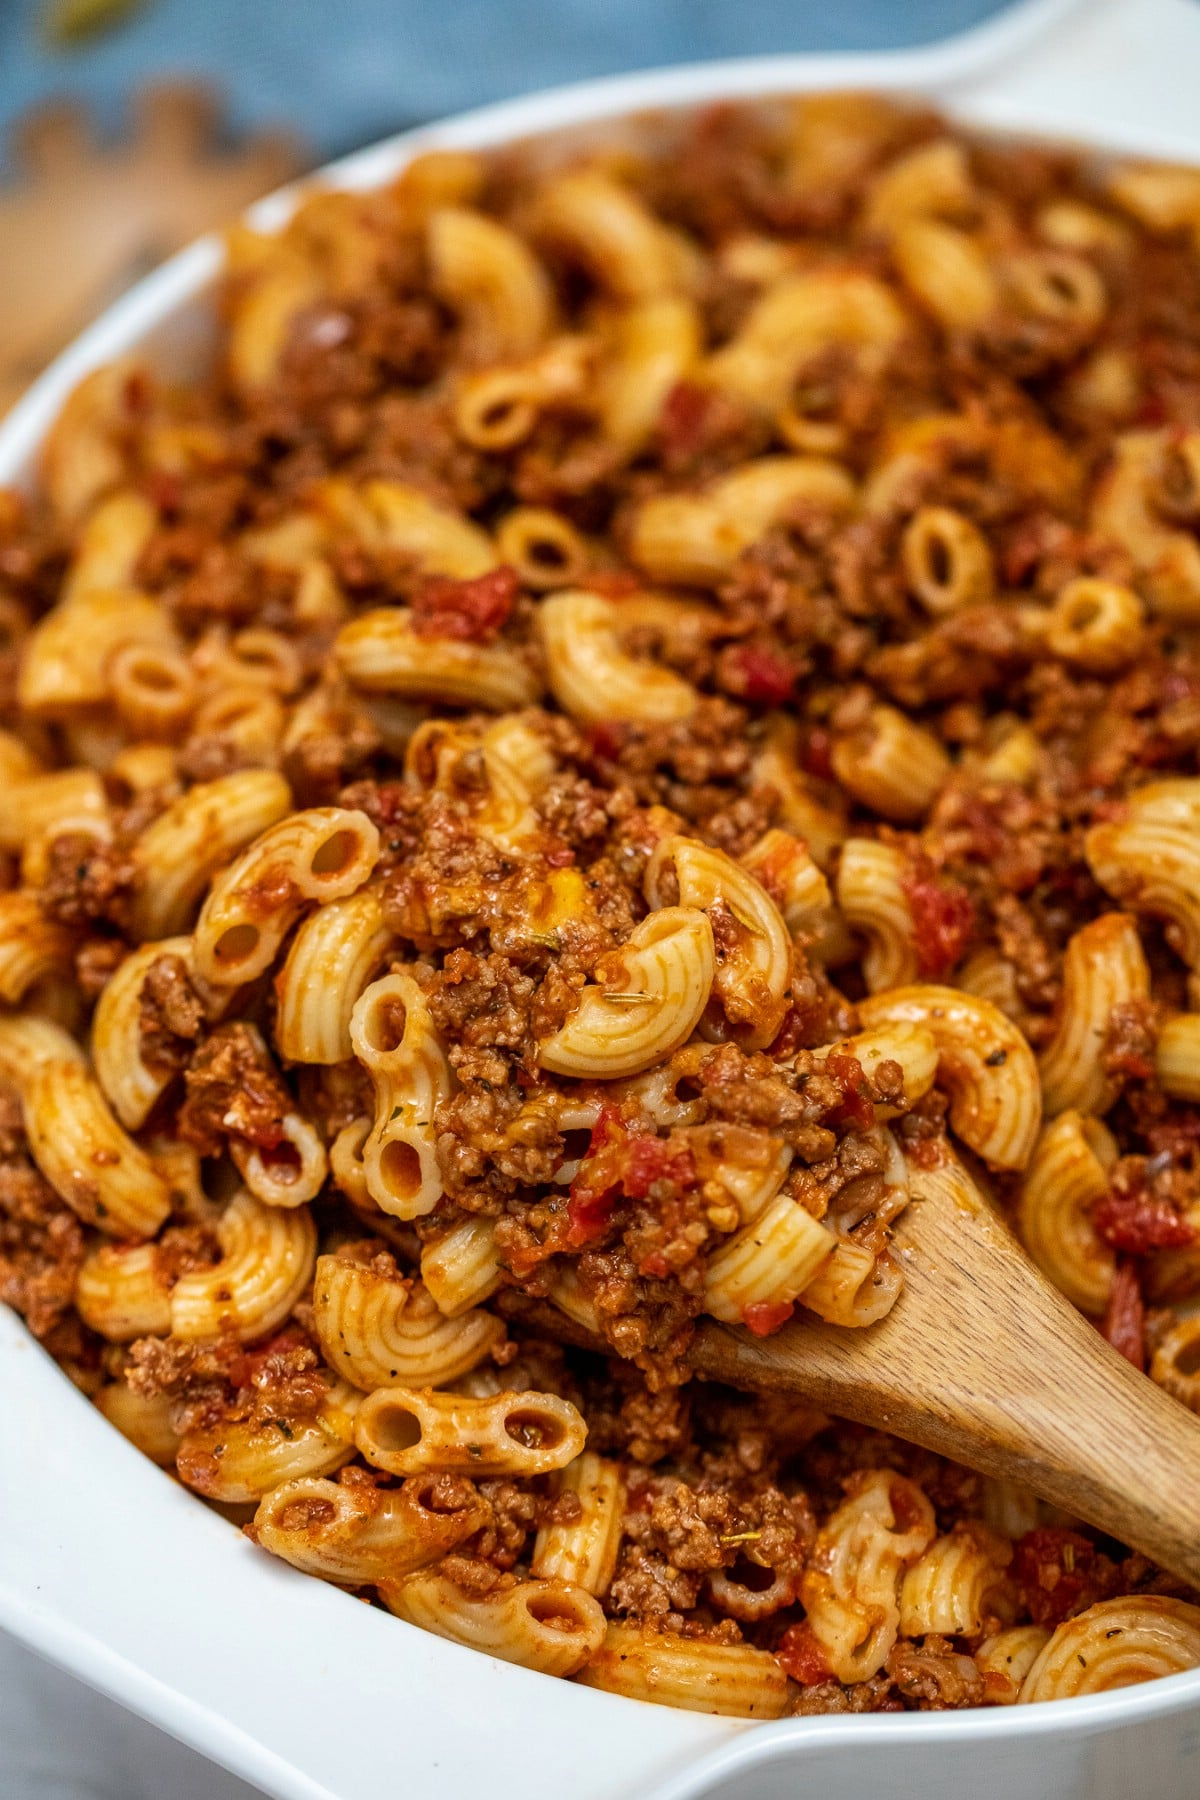 Goulash on wooden spoon